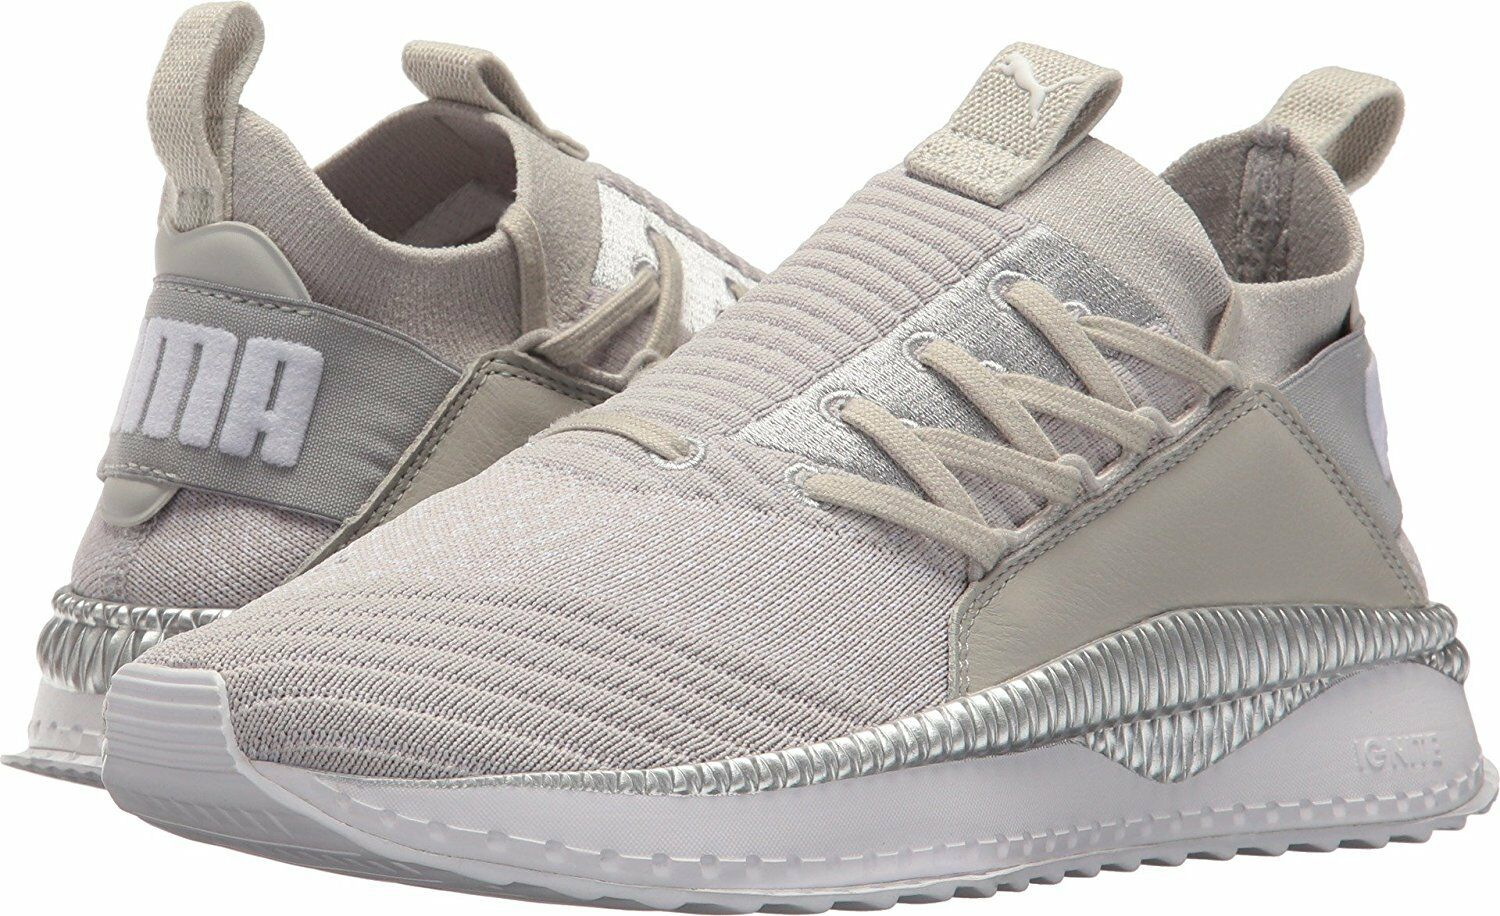 PUMA Tsugi Jun Metallic Gray Violet/Metalli<wbr/>c Beige (WS) (367044 01)